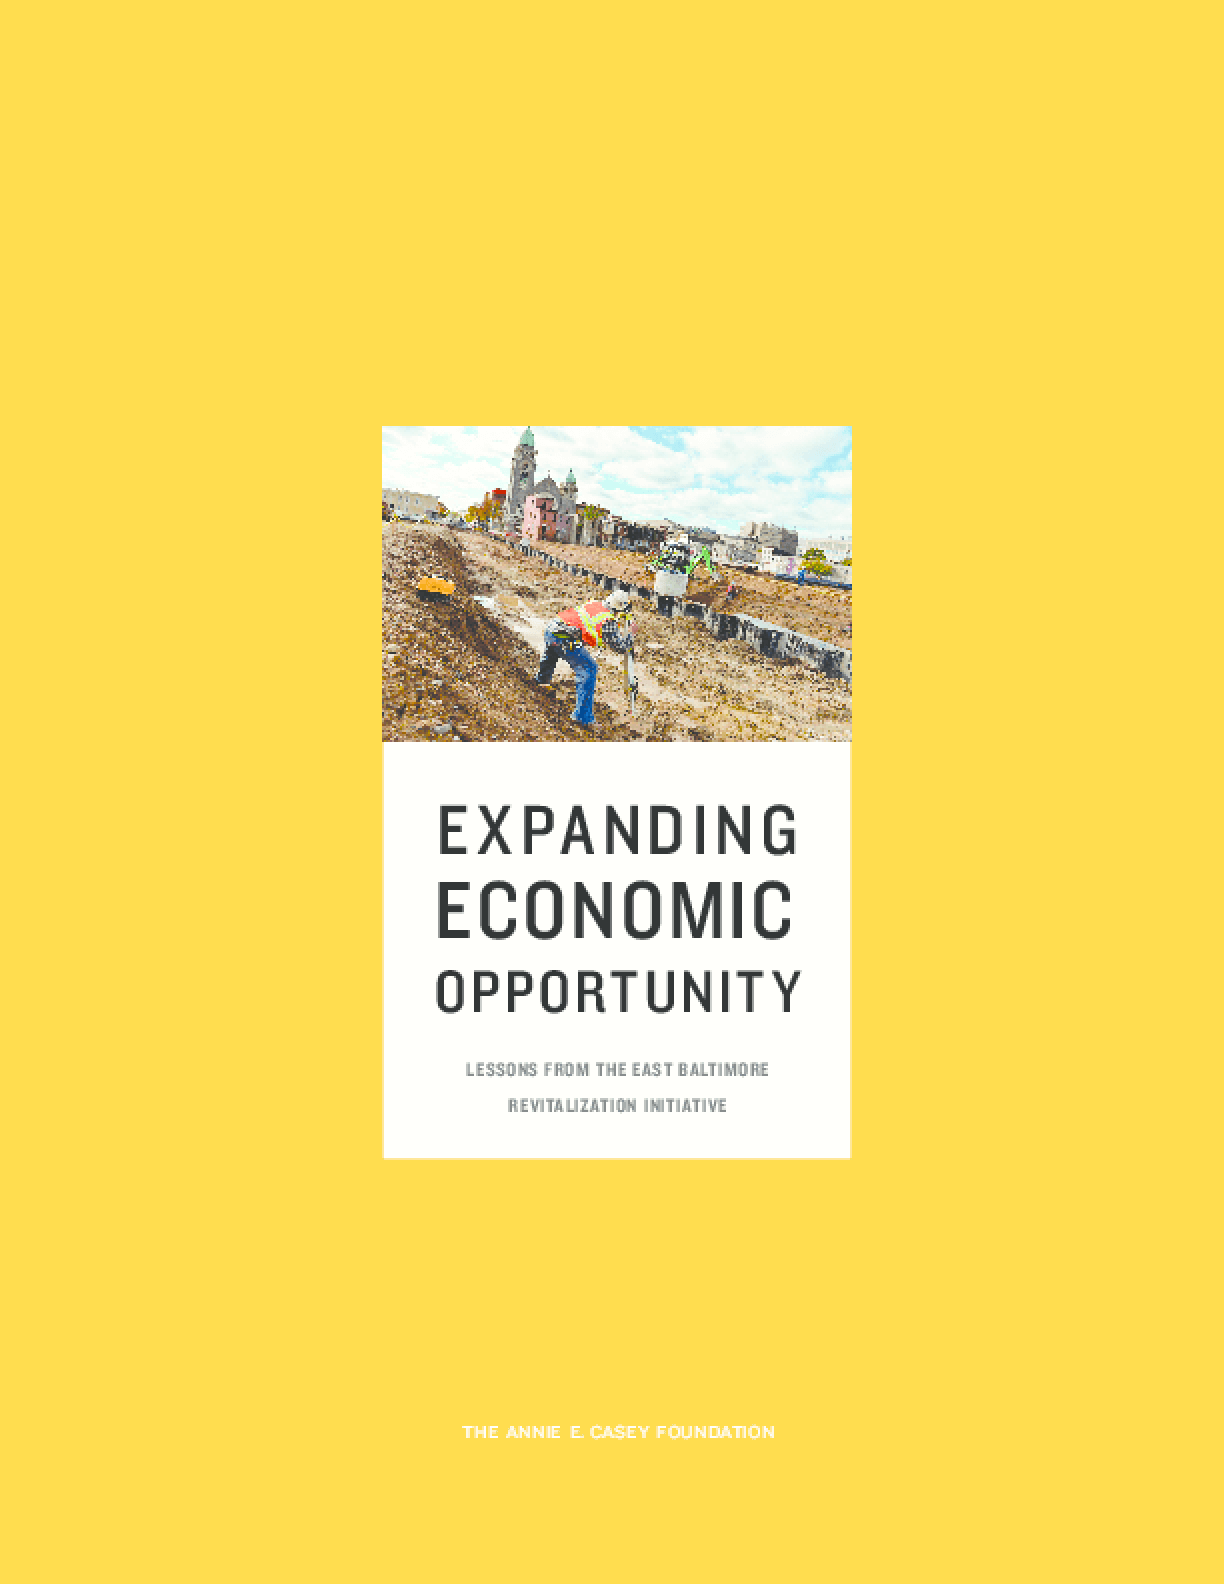 Expanding Economic Opportunity: Lessons From the East Baltimore Revitalization Initiative